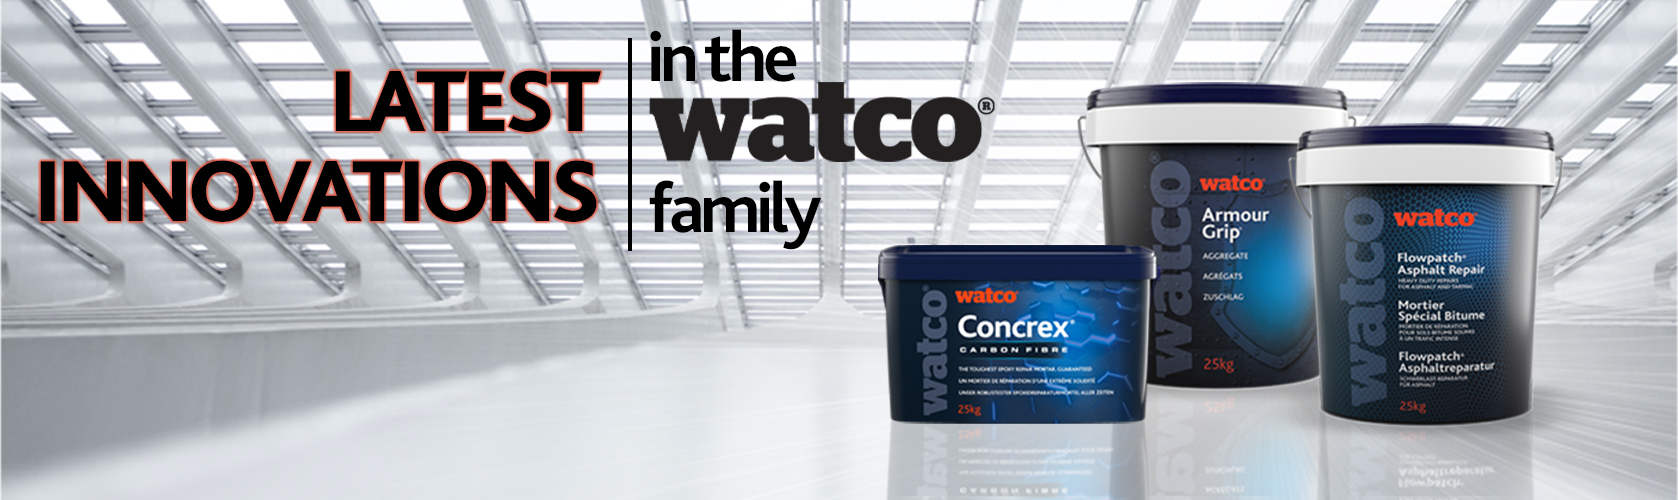 Latest innovations in the Watco family